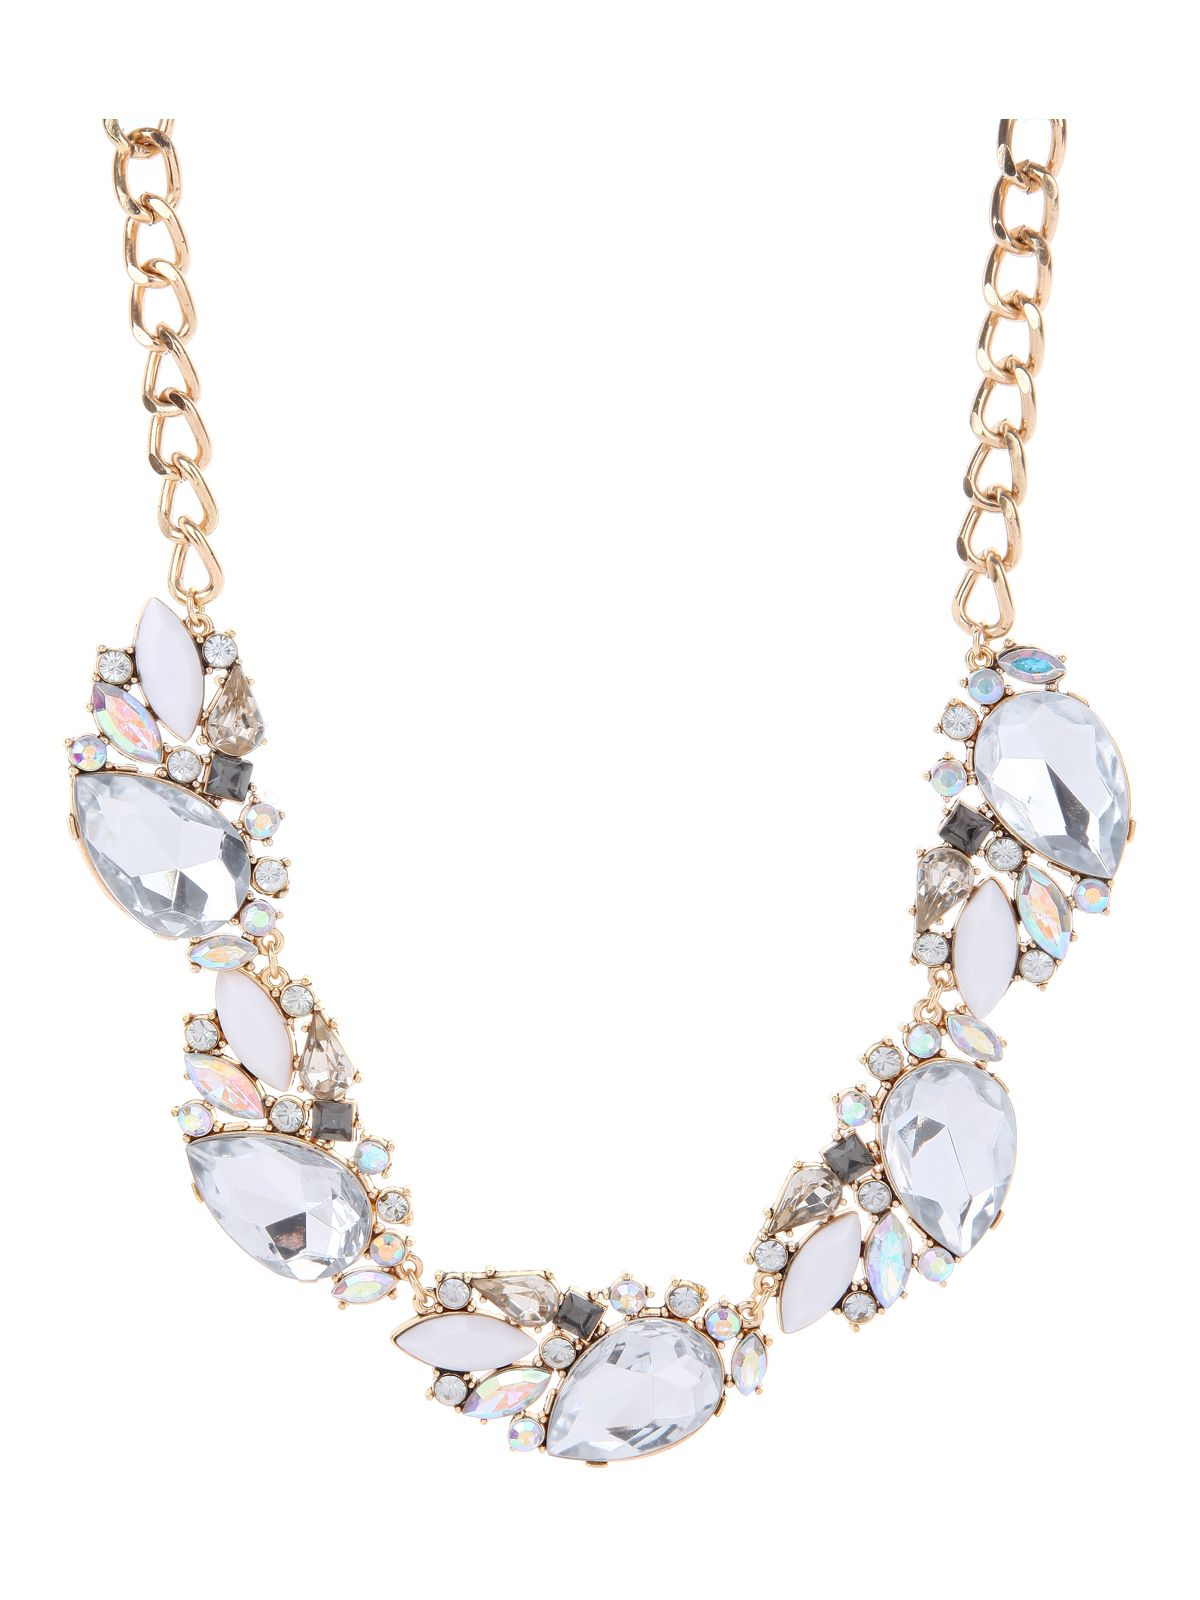 Teardrop Diamante Necklace